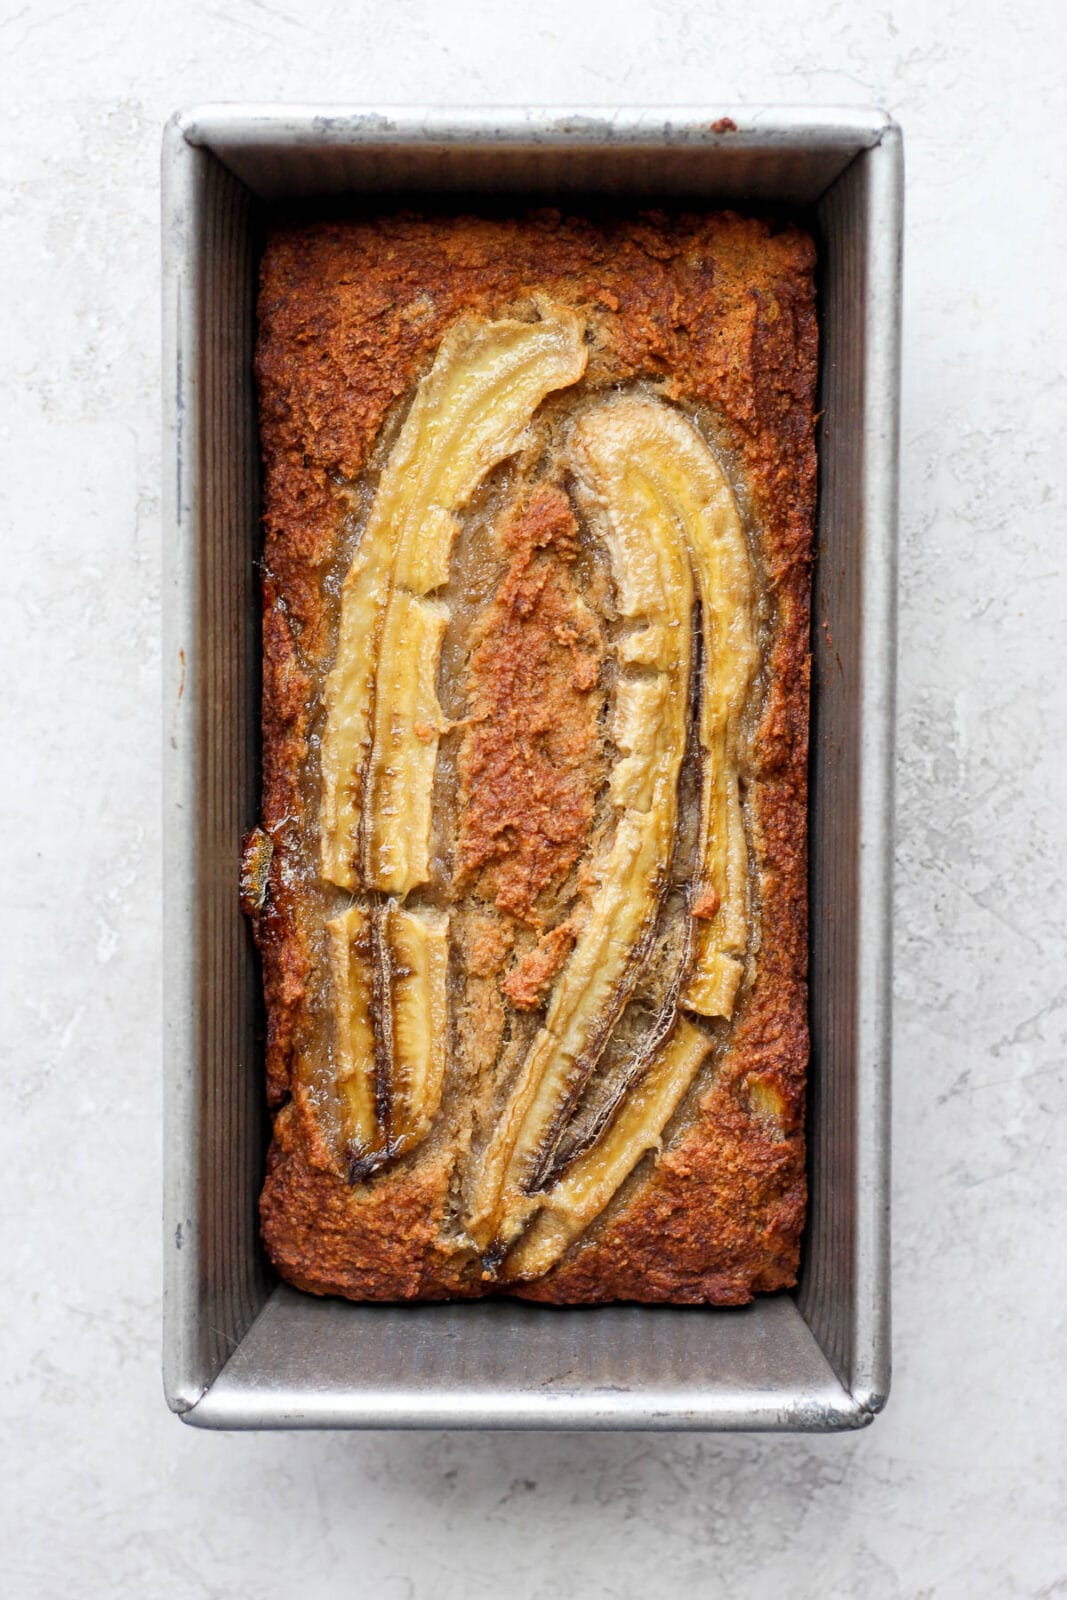 Baked paleo banana bread in a loaf pan.